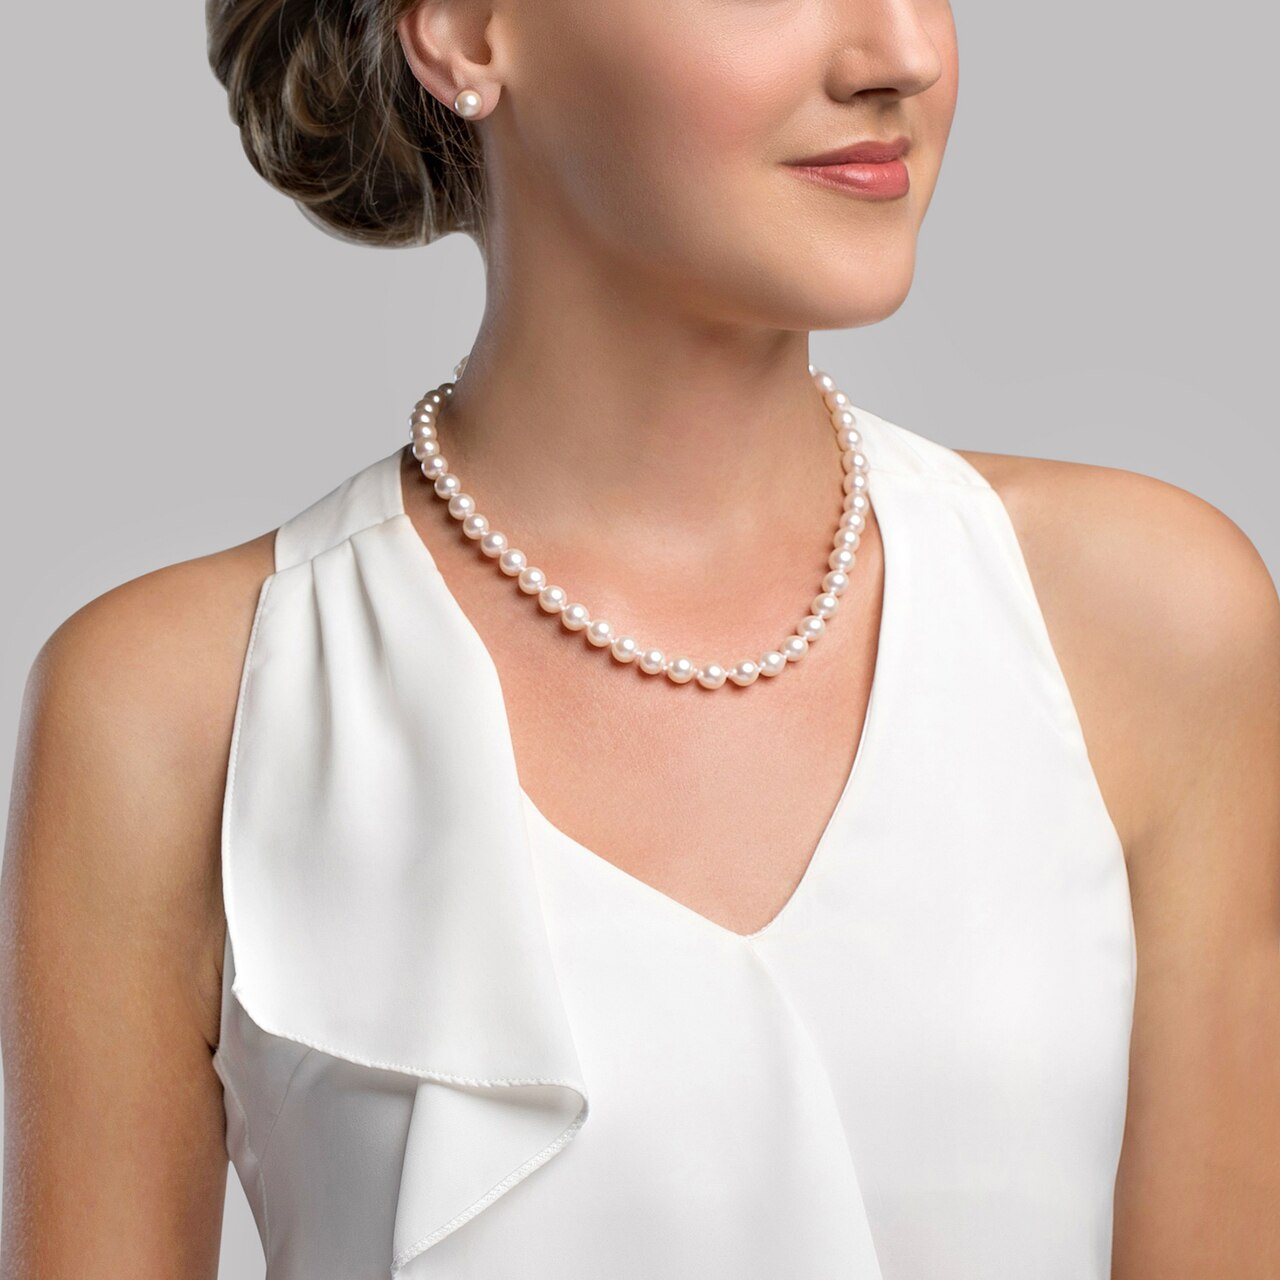 This elegant necklace features 9.5-10.0mm Japanese Akoya pearls, handpicked for their luminous luster